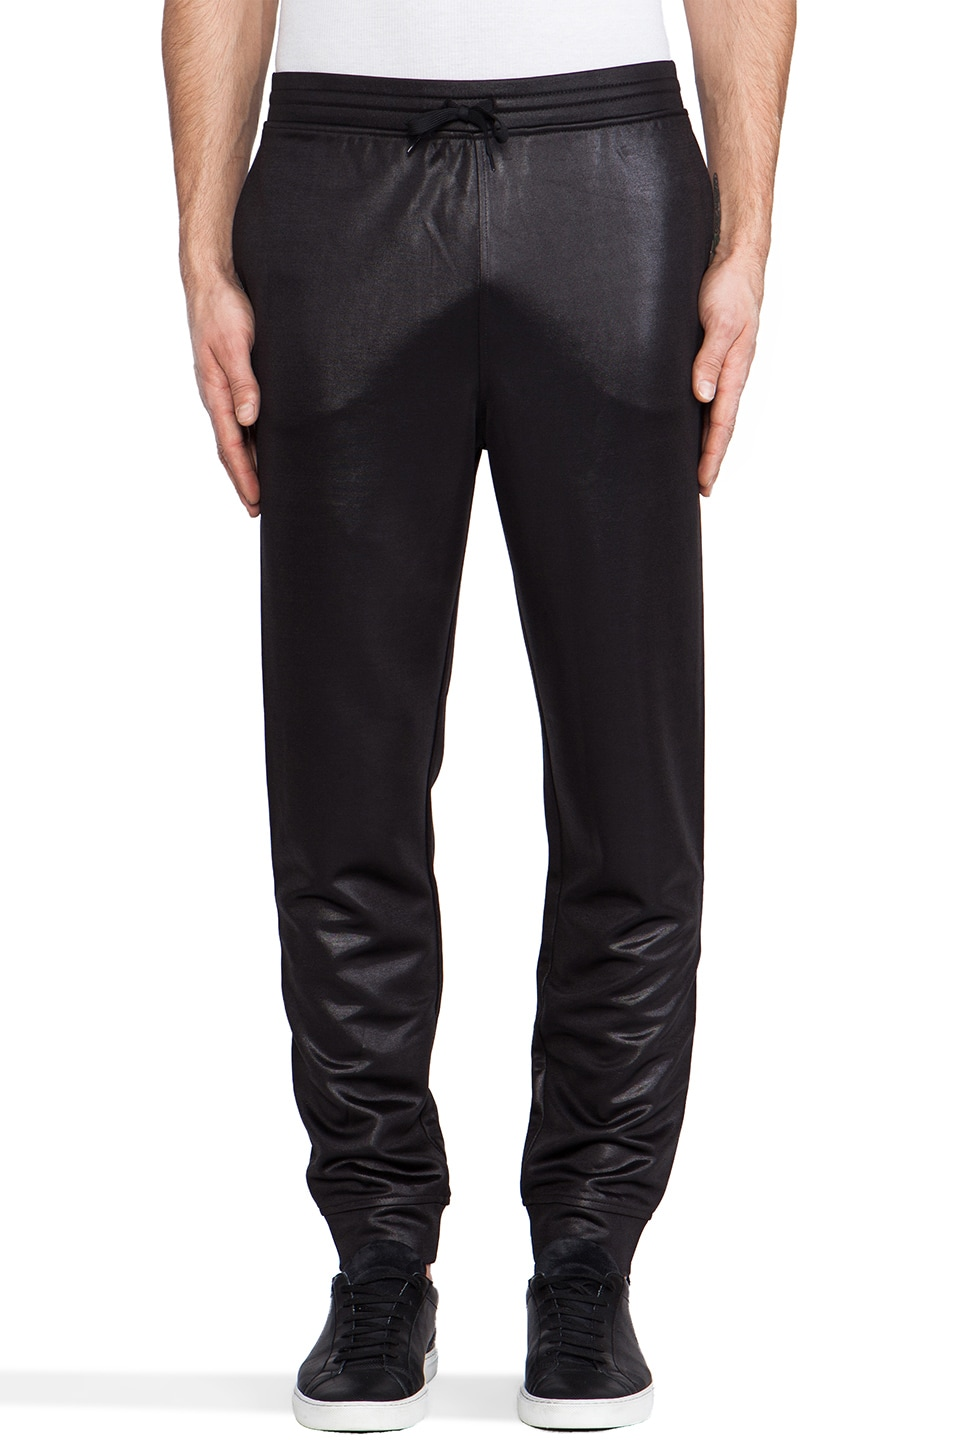 T by Alexander Wang Shiny Double Face Knit Sweatpants in Black